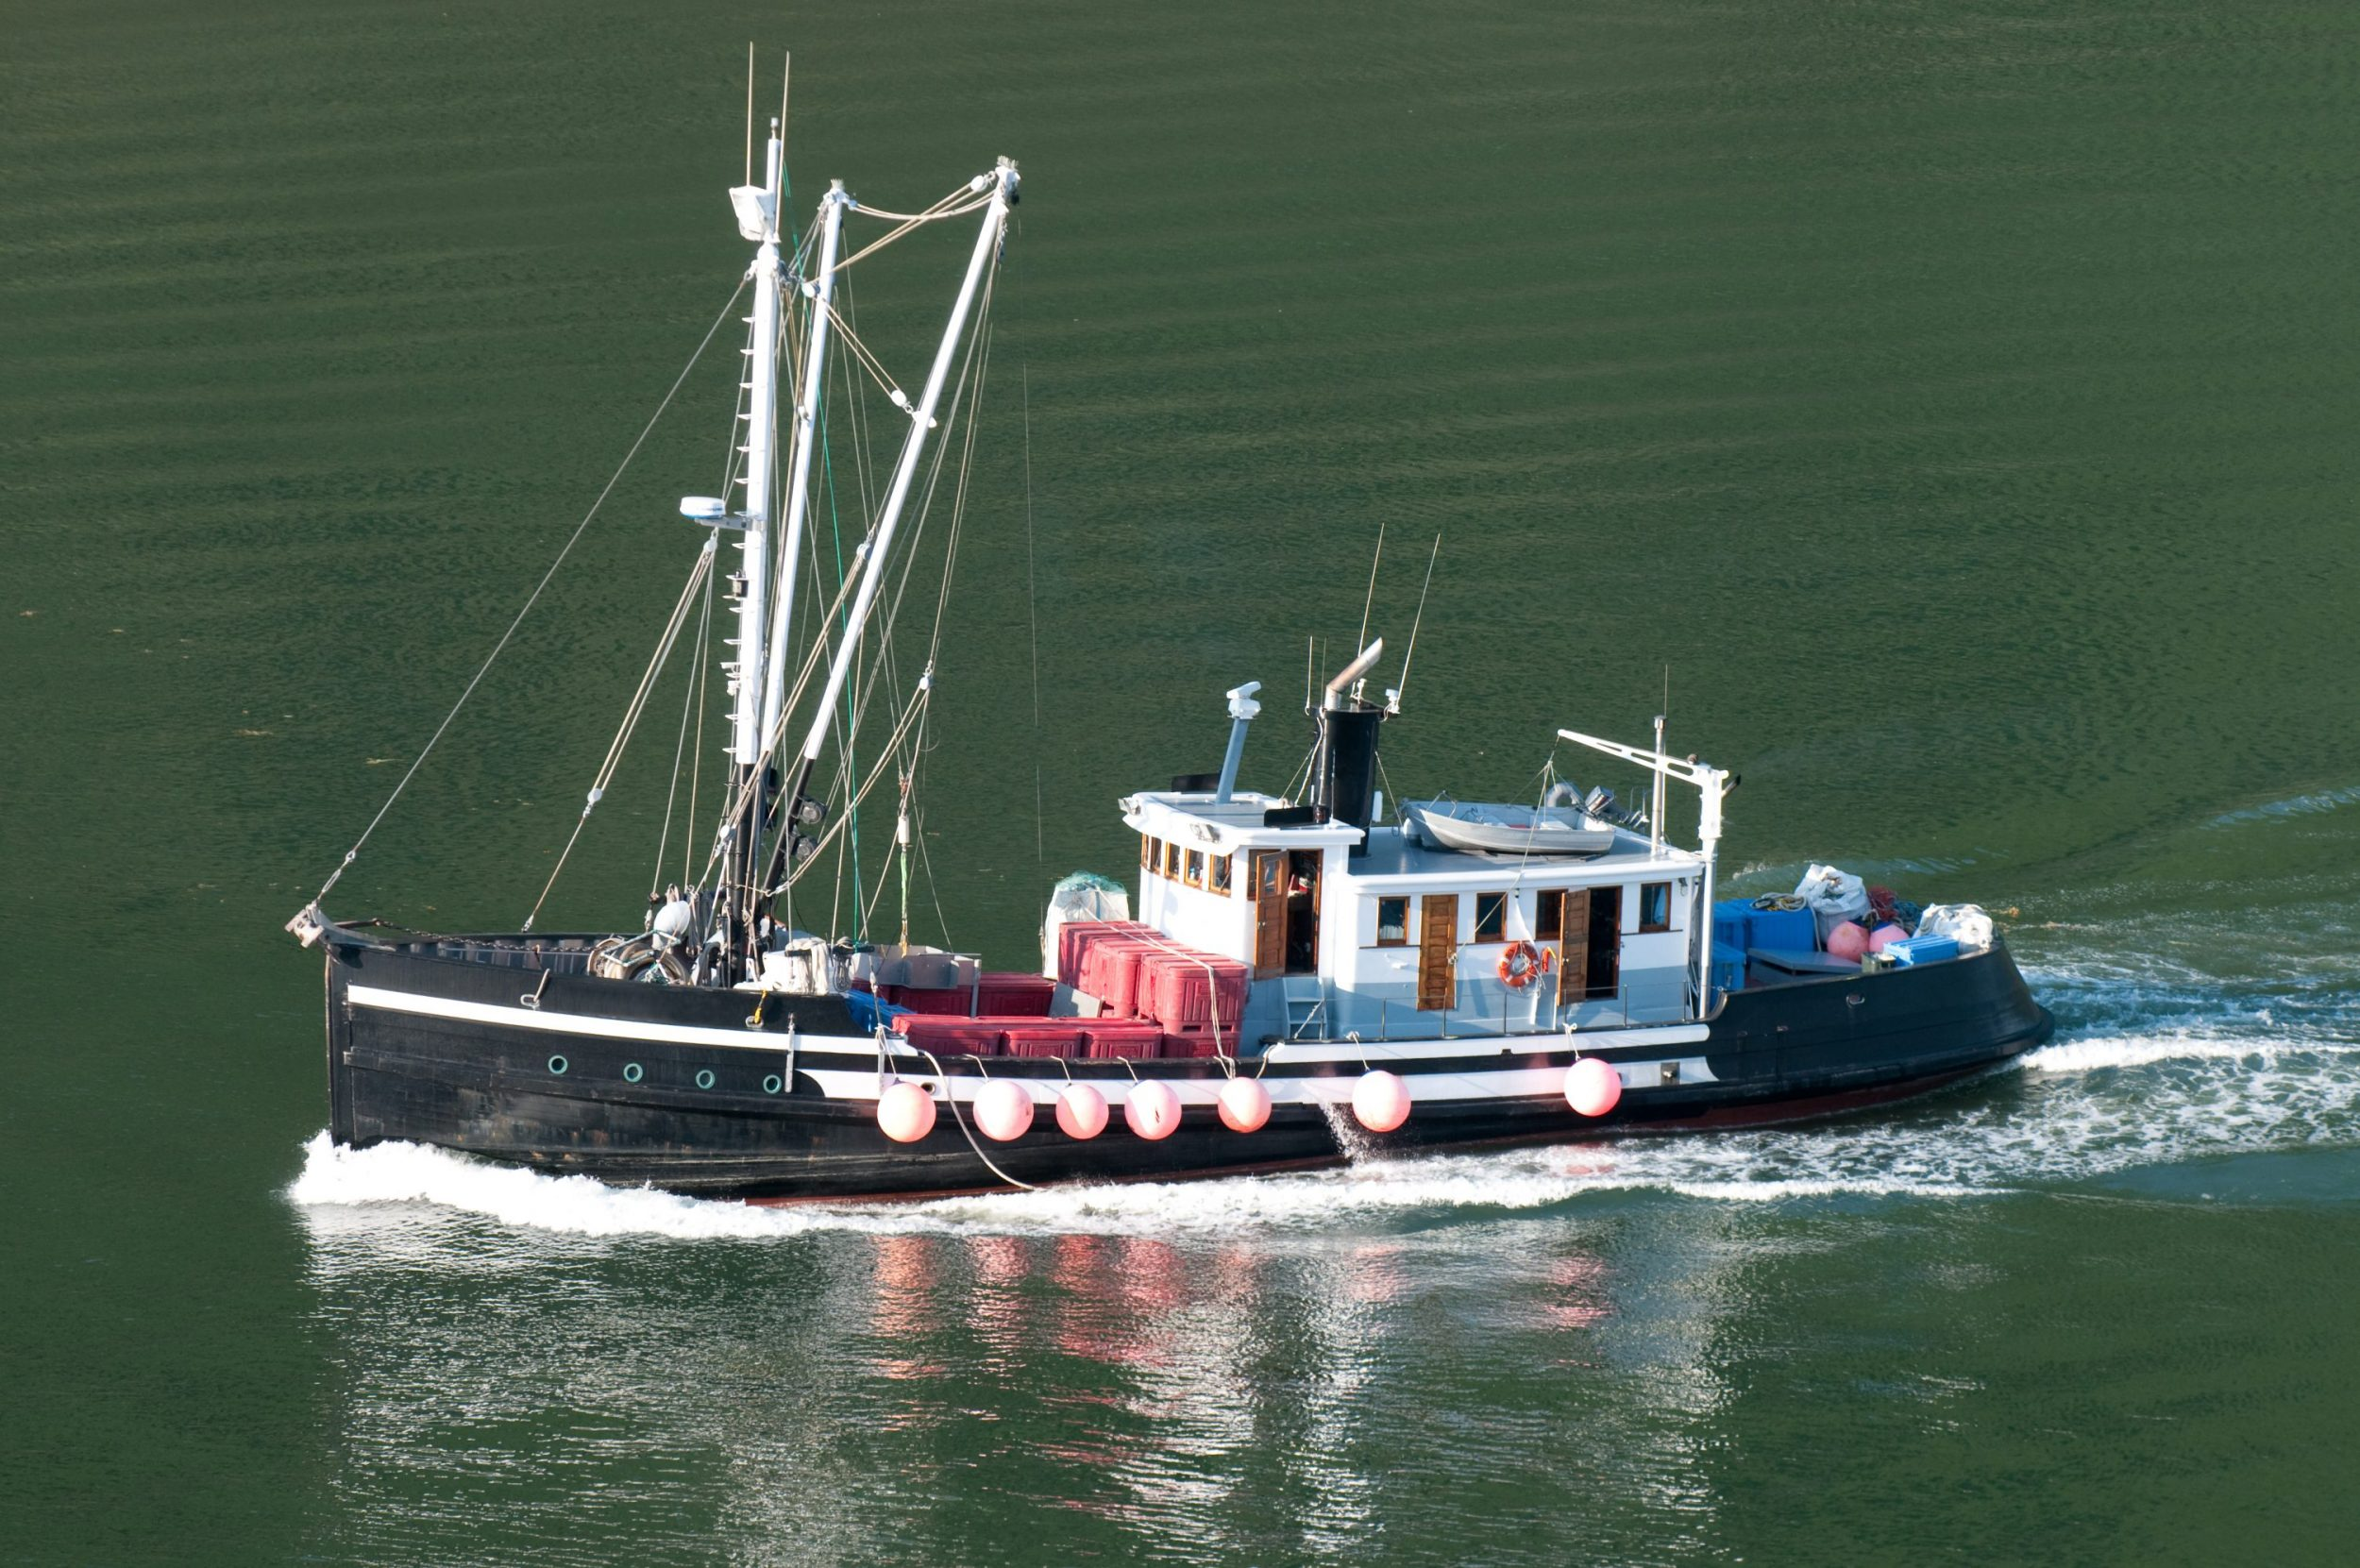 Seiner Fishing Boat Accidents and Injuries